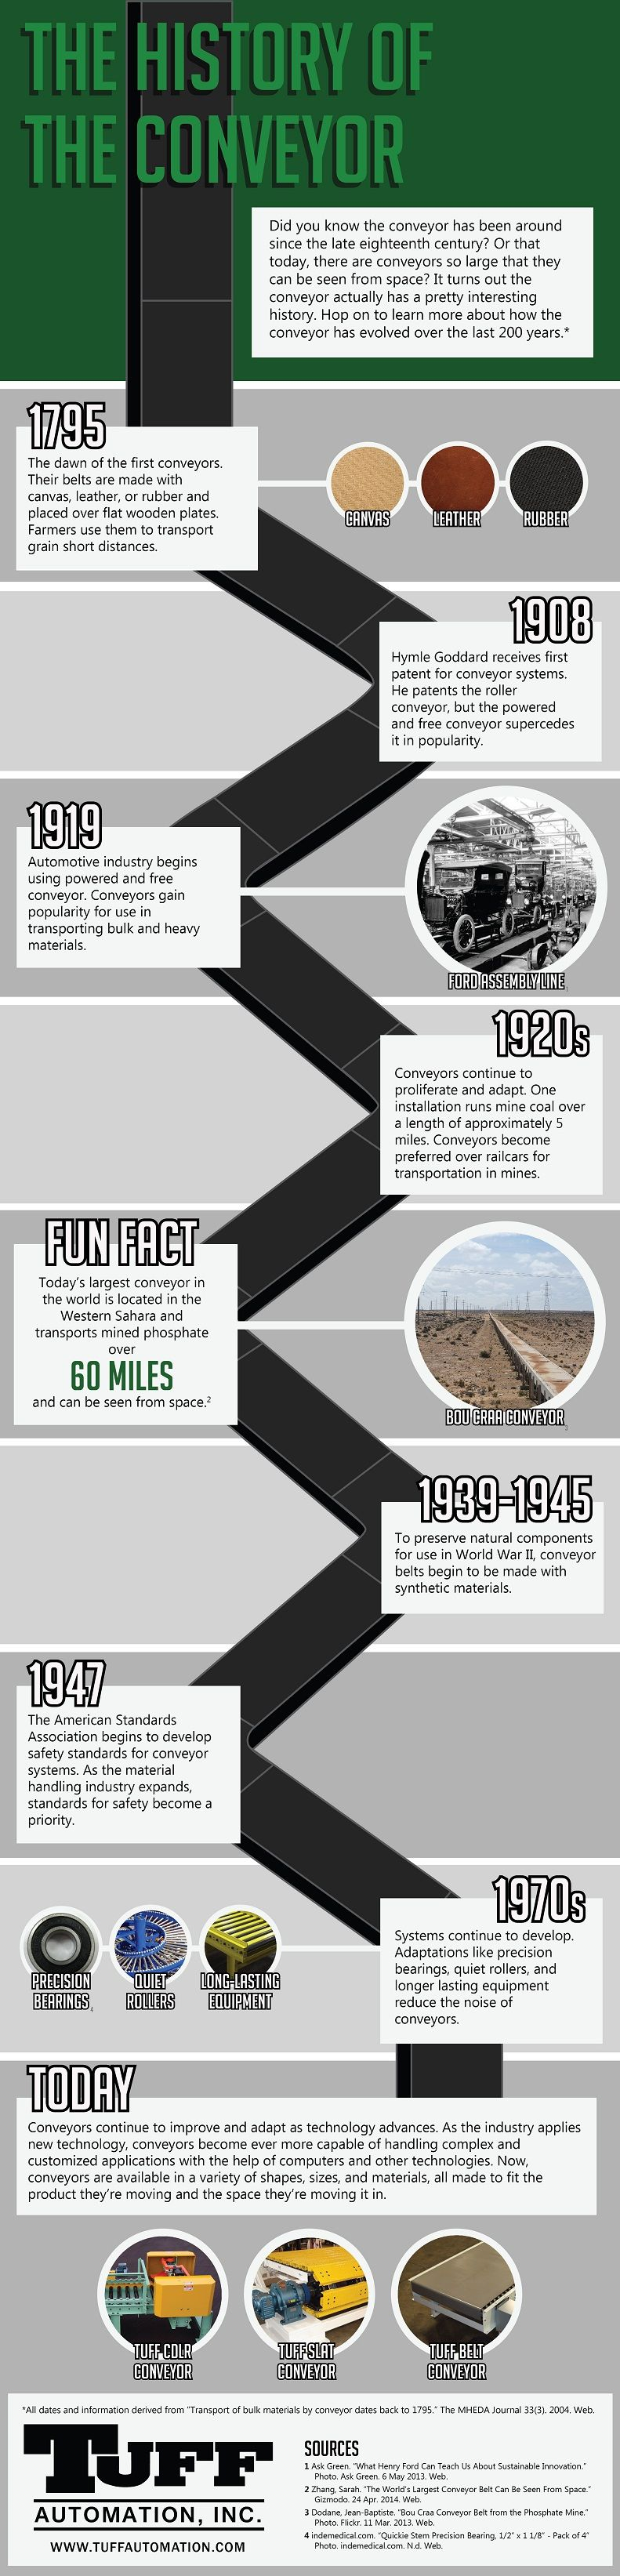 The History of the Conveyor infographic History